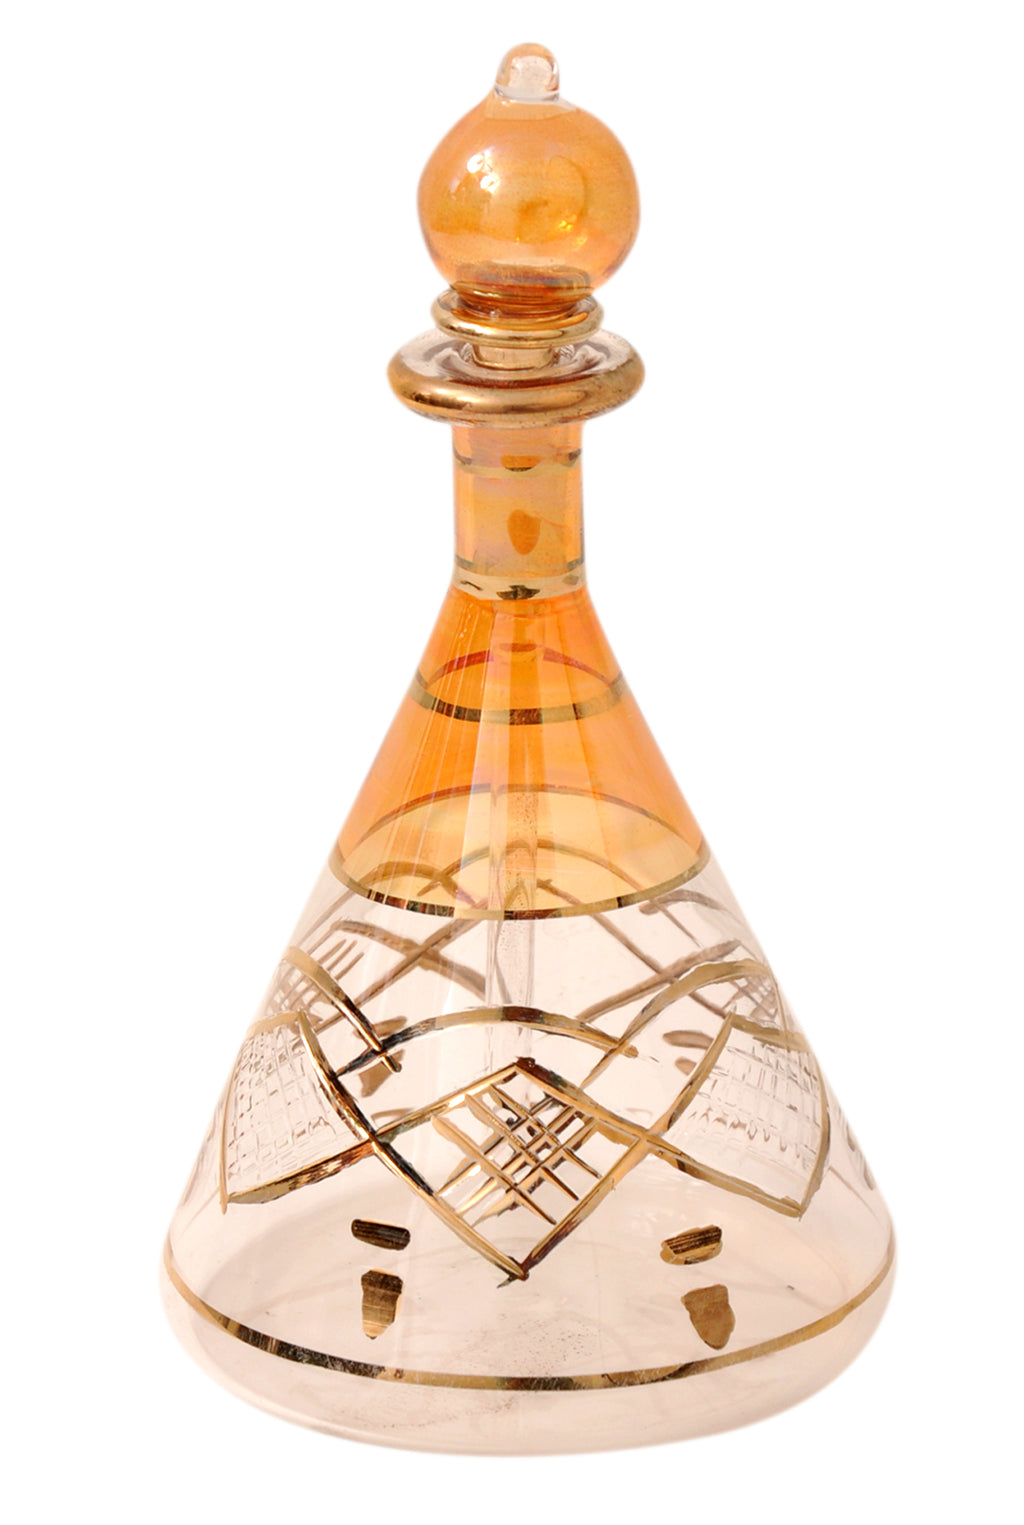 Egyptian perfume bottles single large hand Blown Decorative Pyrex Glass Vial Height inch 7.75 inch ( 20 cm ) by CraftsOfEgypt